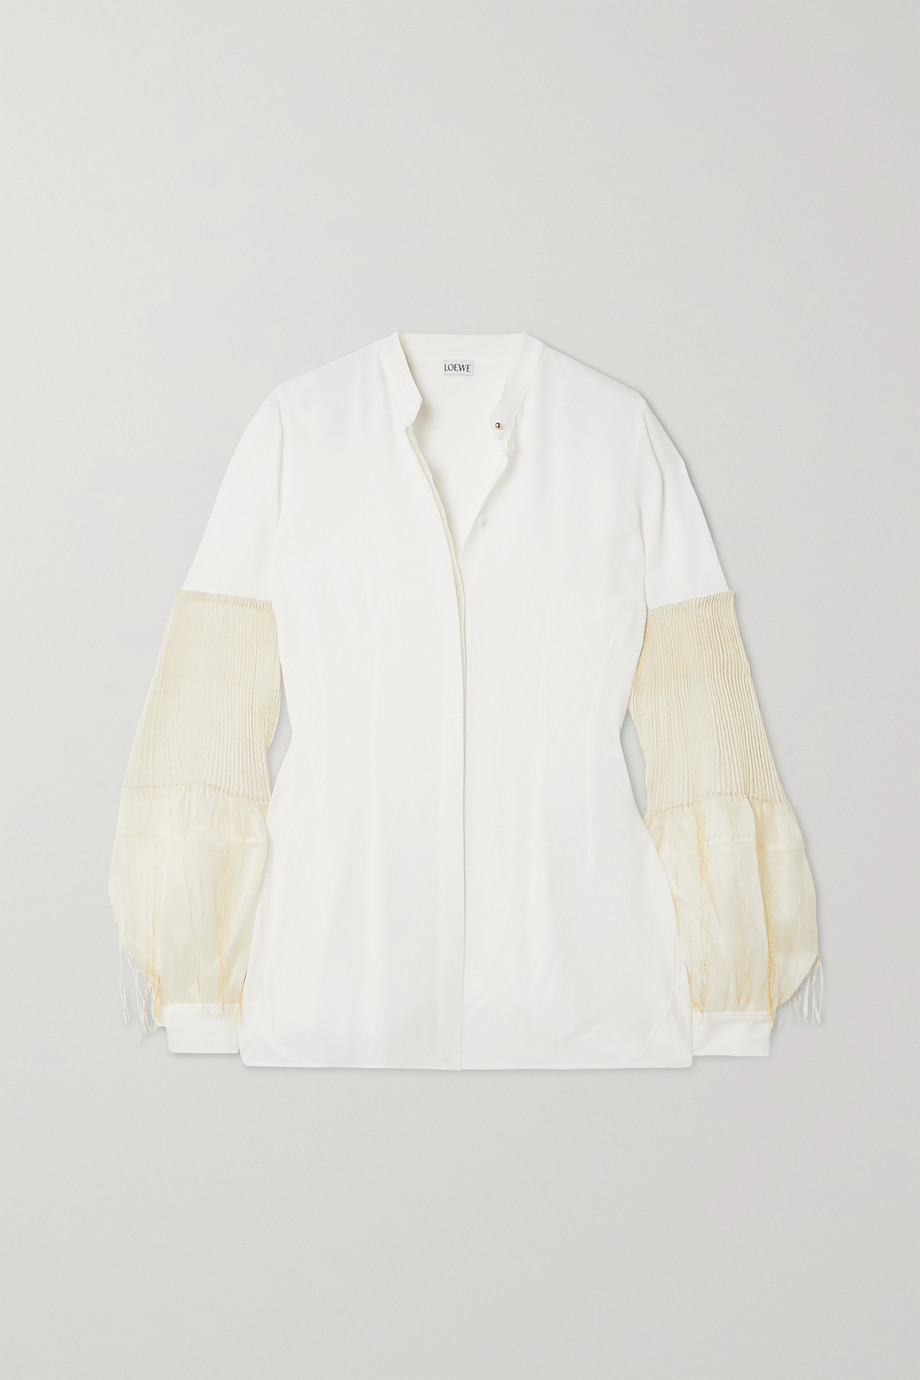 Loewe Crepe de chine and pleated embroidered silk-chiffon blouse